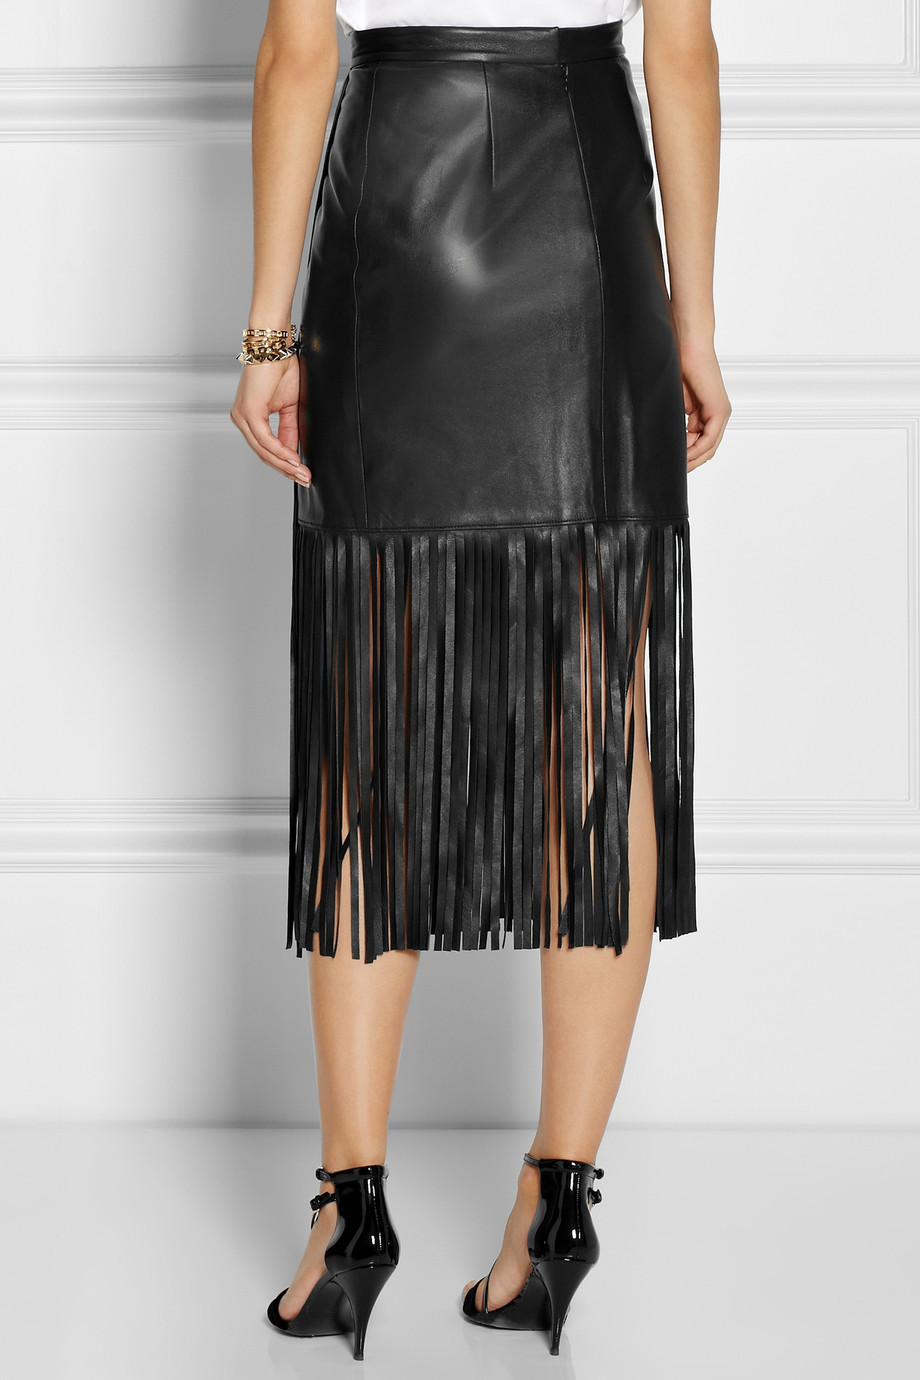 Black Fringe Leather Skirt - Dress Ala